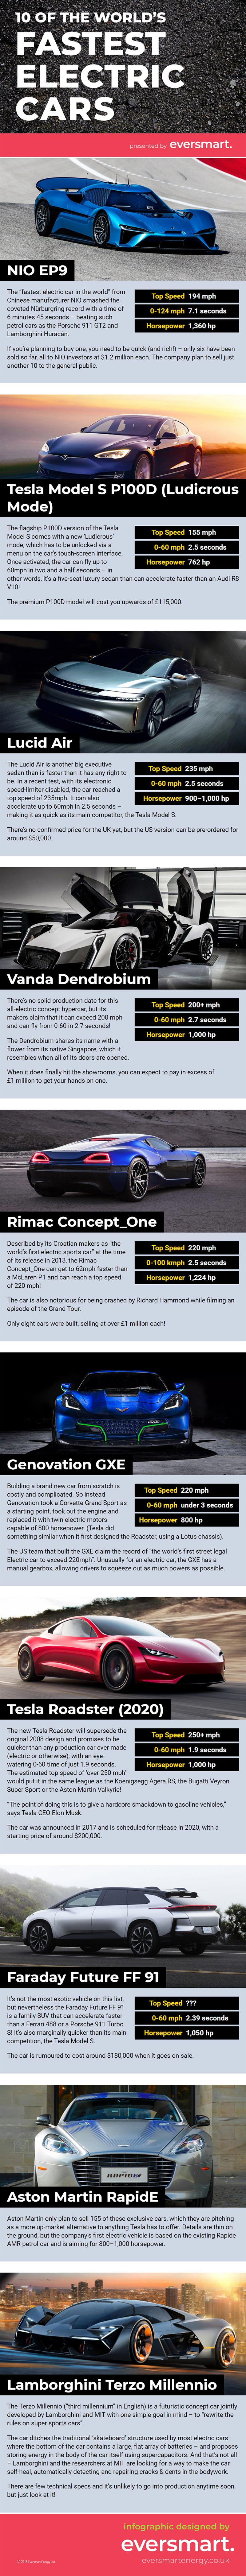 fastest electric cars infographic